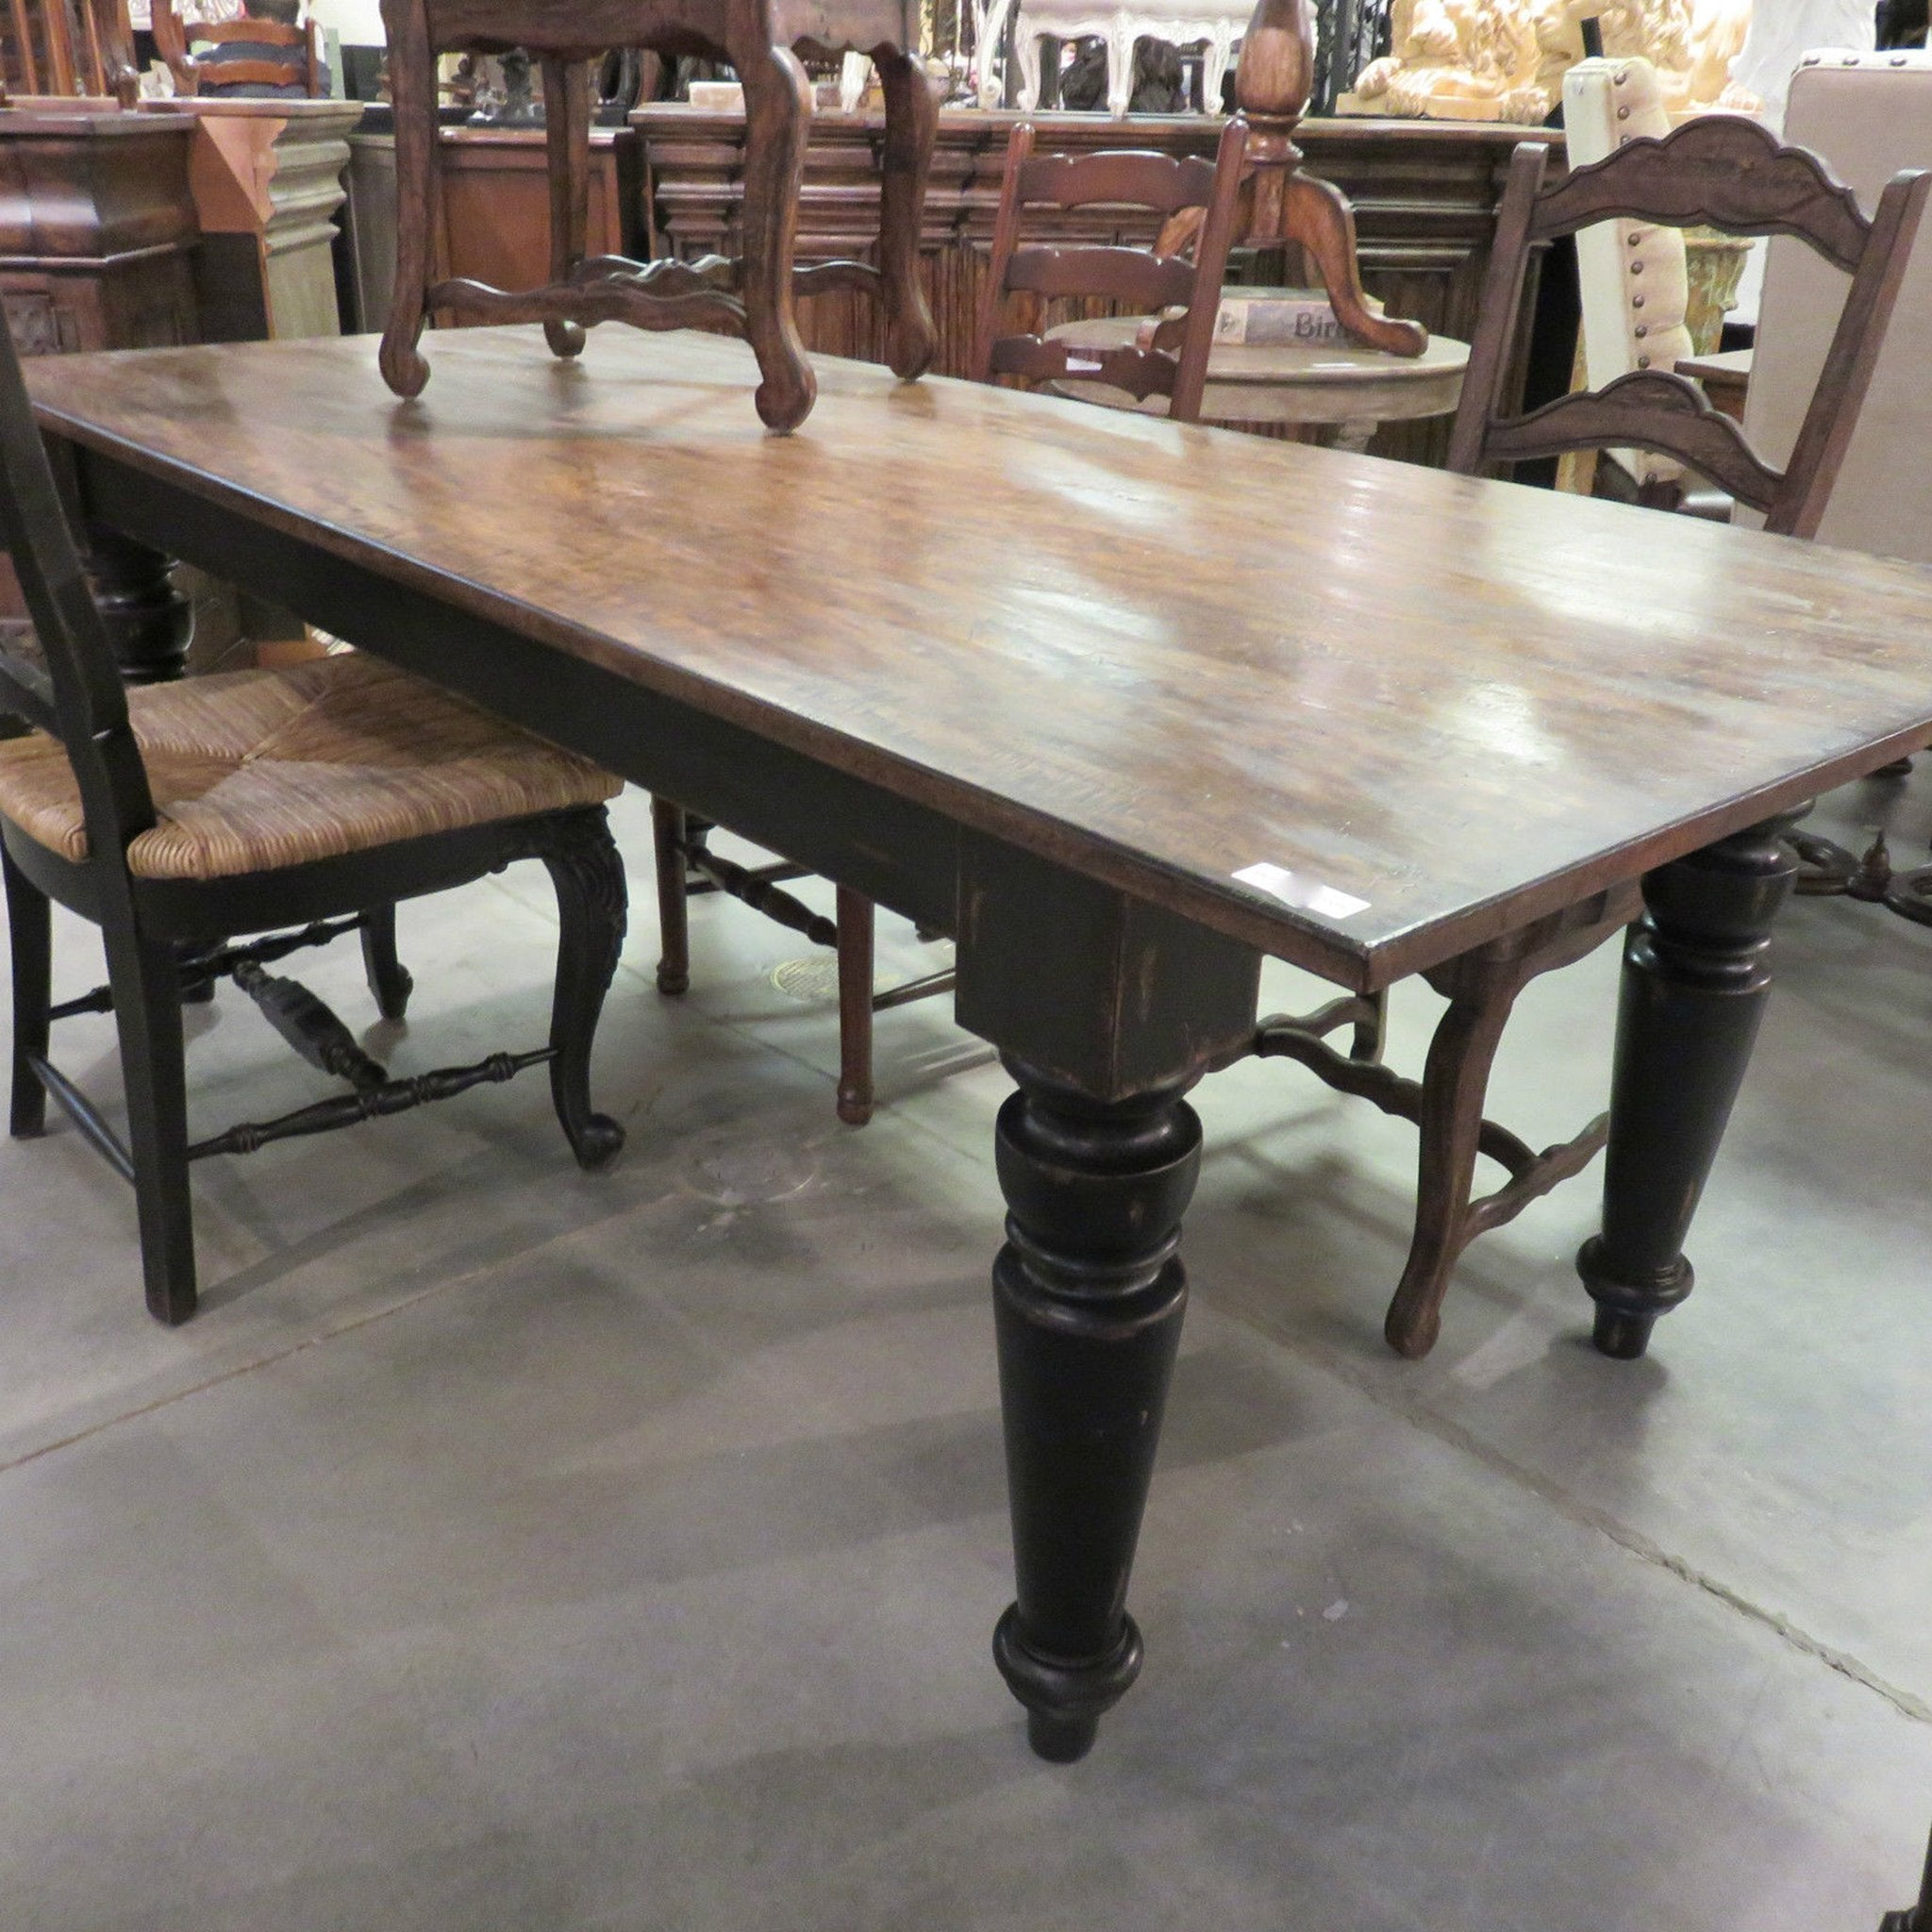 "Rustic Farmhouse Dining Table 72"" Black Distressed"